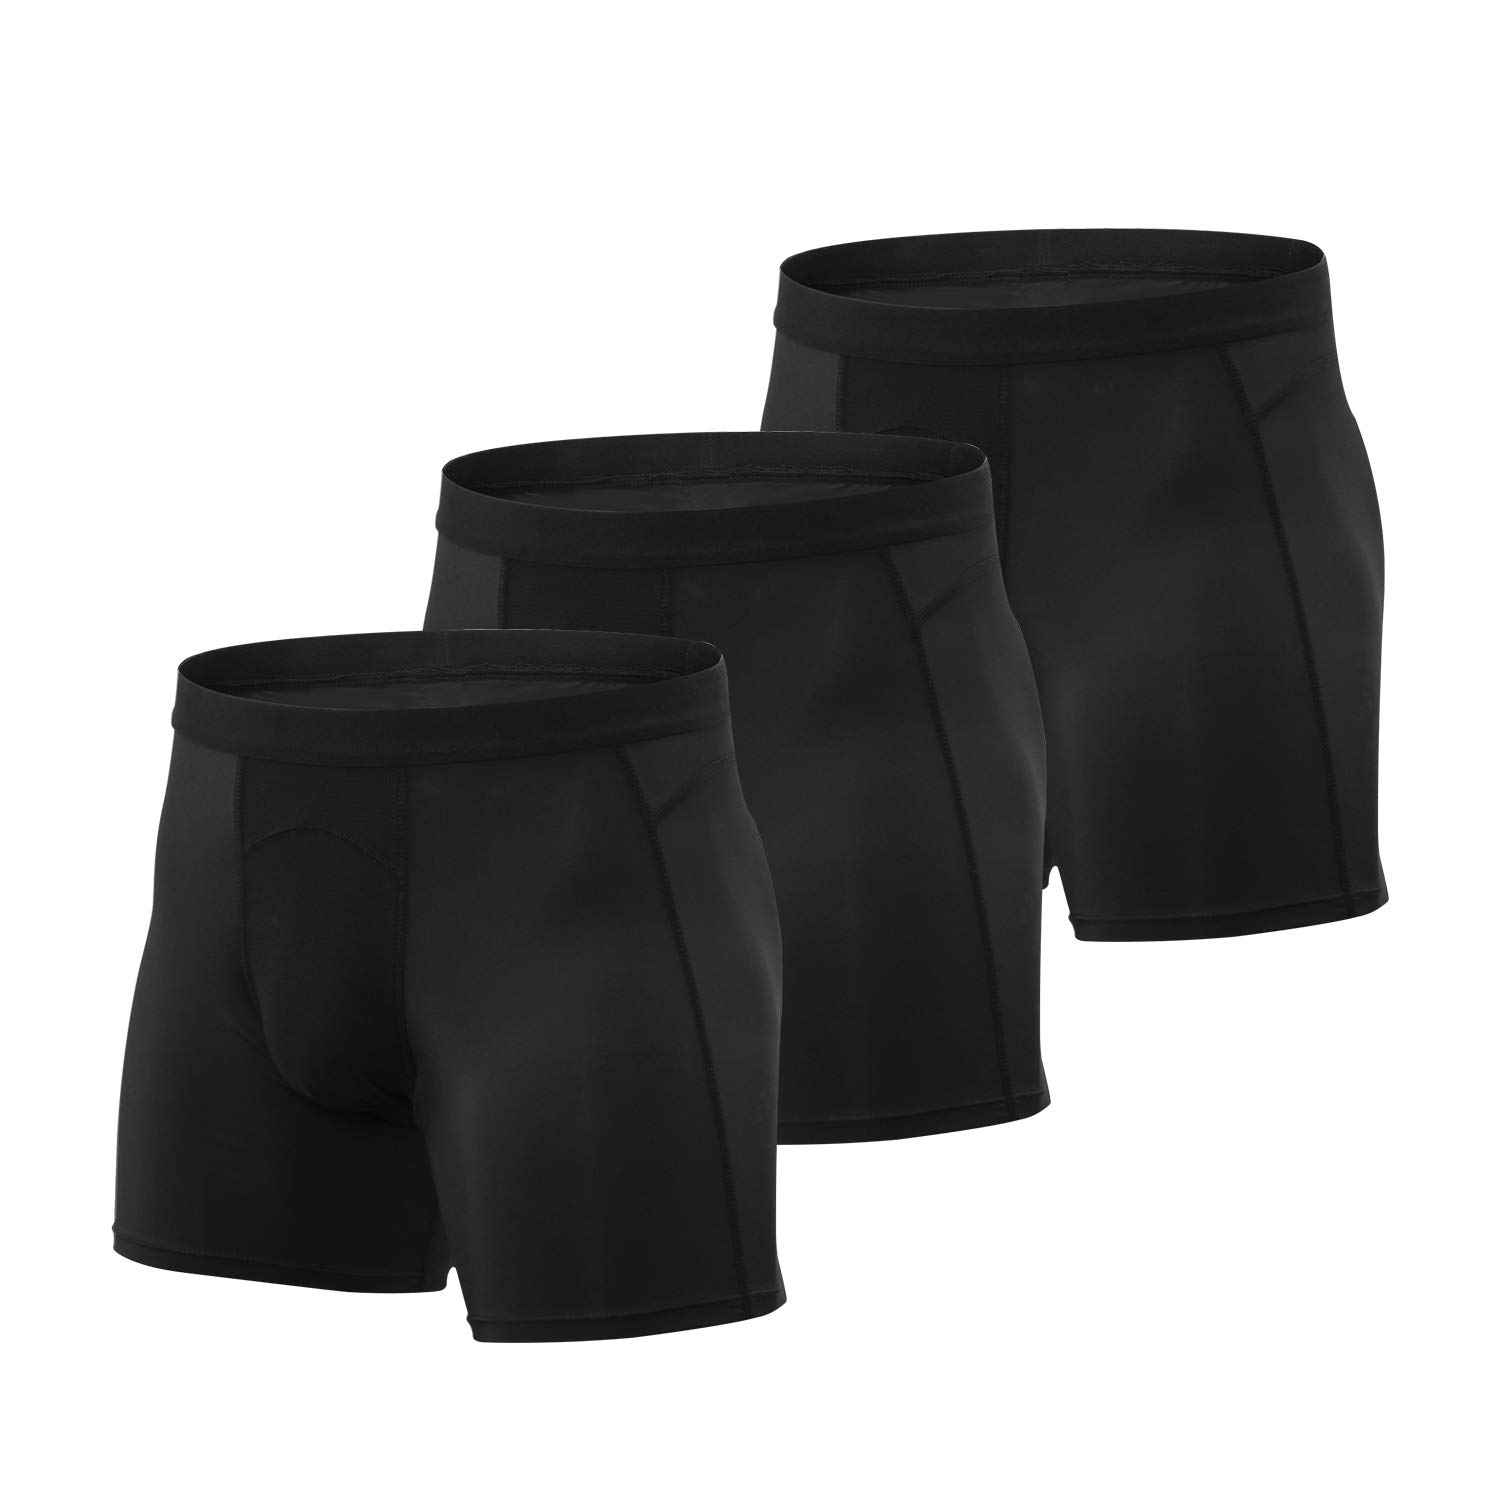 Niksa 3Pcs Men's Athletic Underwear Sport Performance Boxer Briefs Cool Dry-XXL Black by Niksa